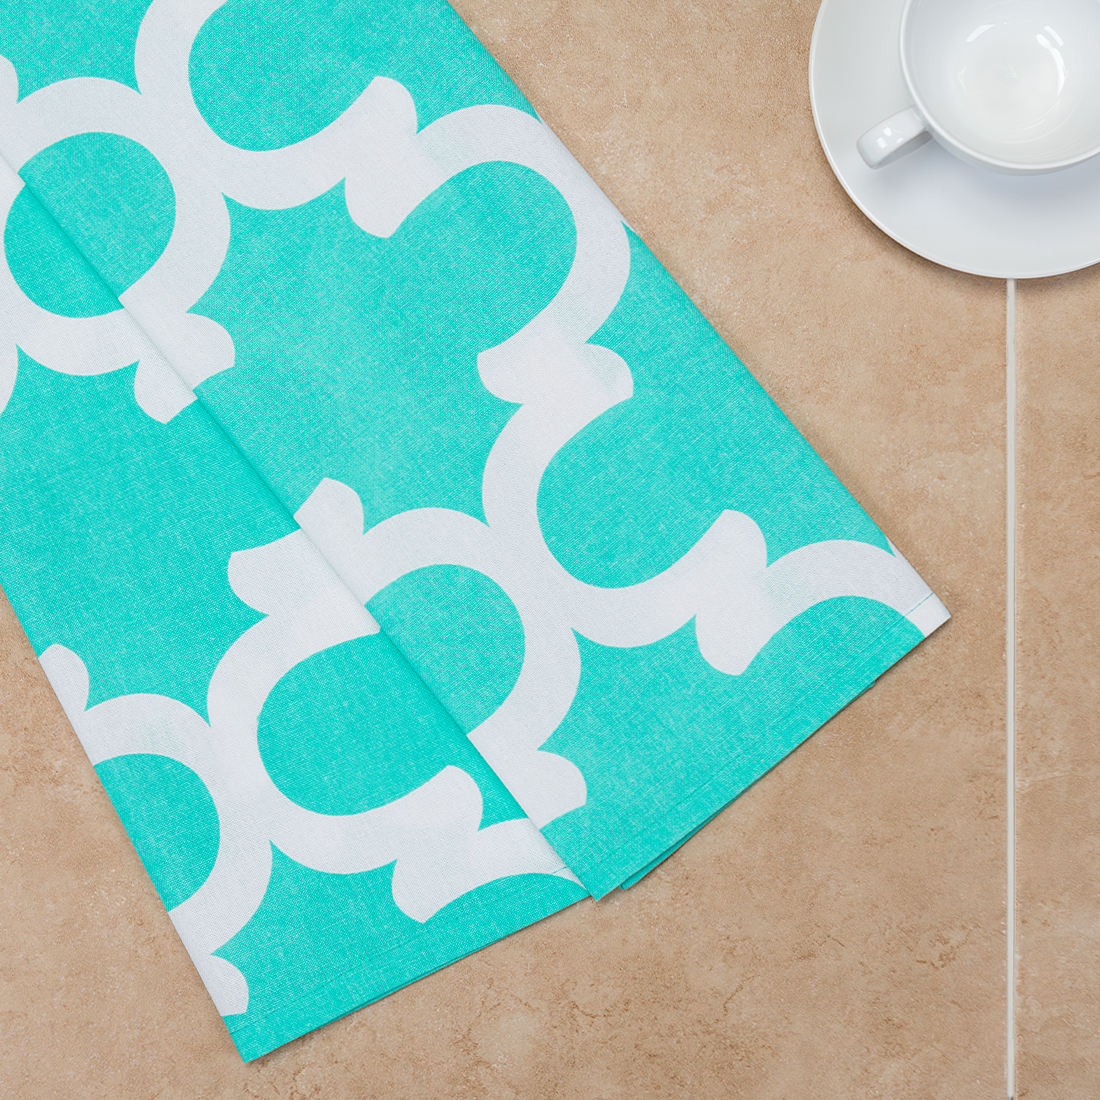 18 x 28 in. Mint & White Trellis Kitchen Towels 2 pack by